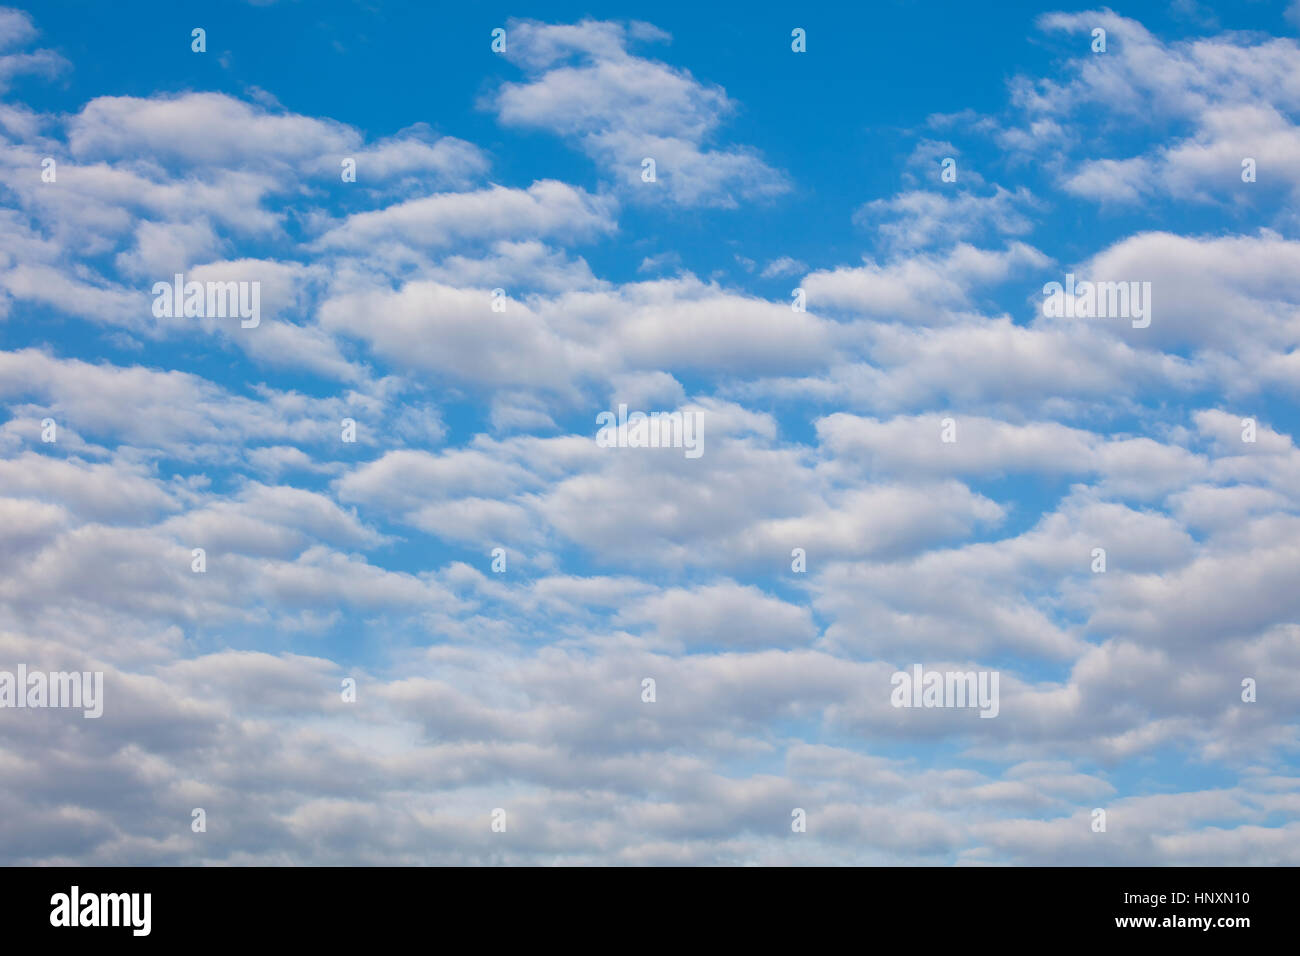 Blue sky with puffy white clouds over Central Florida - Stock Image